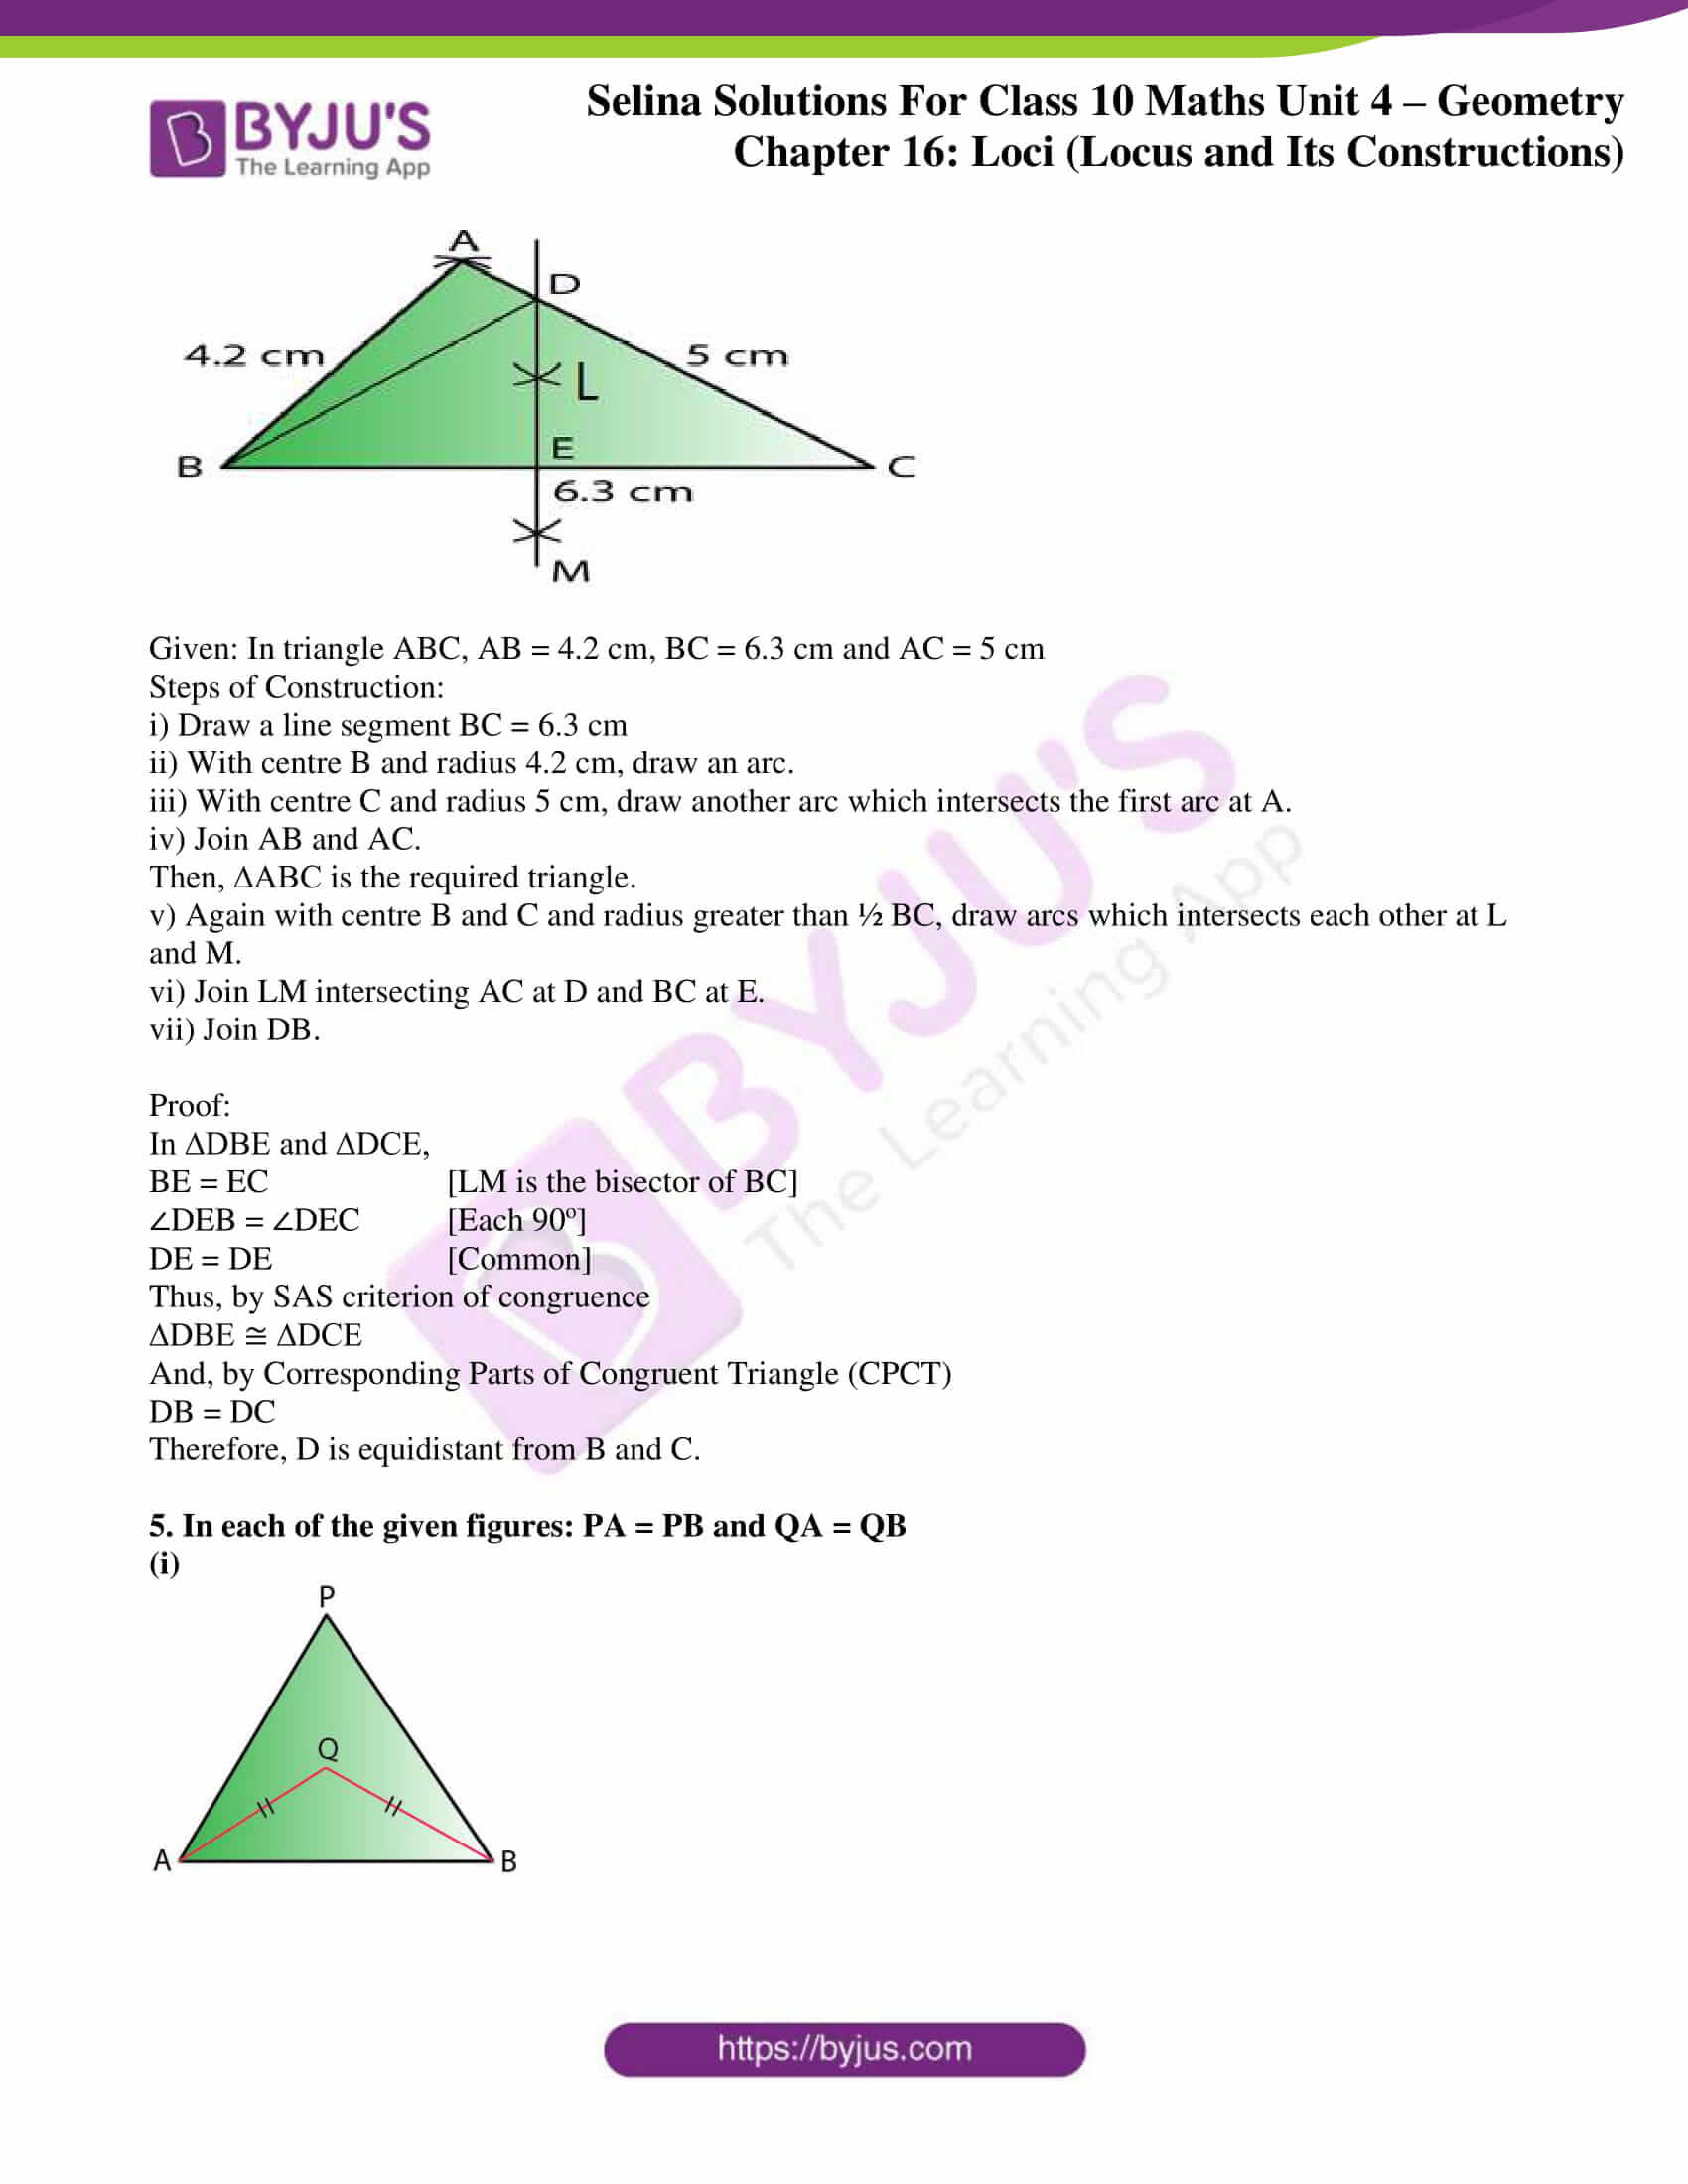 selina solution concise maths class 10 chapter 16 ex a 3